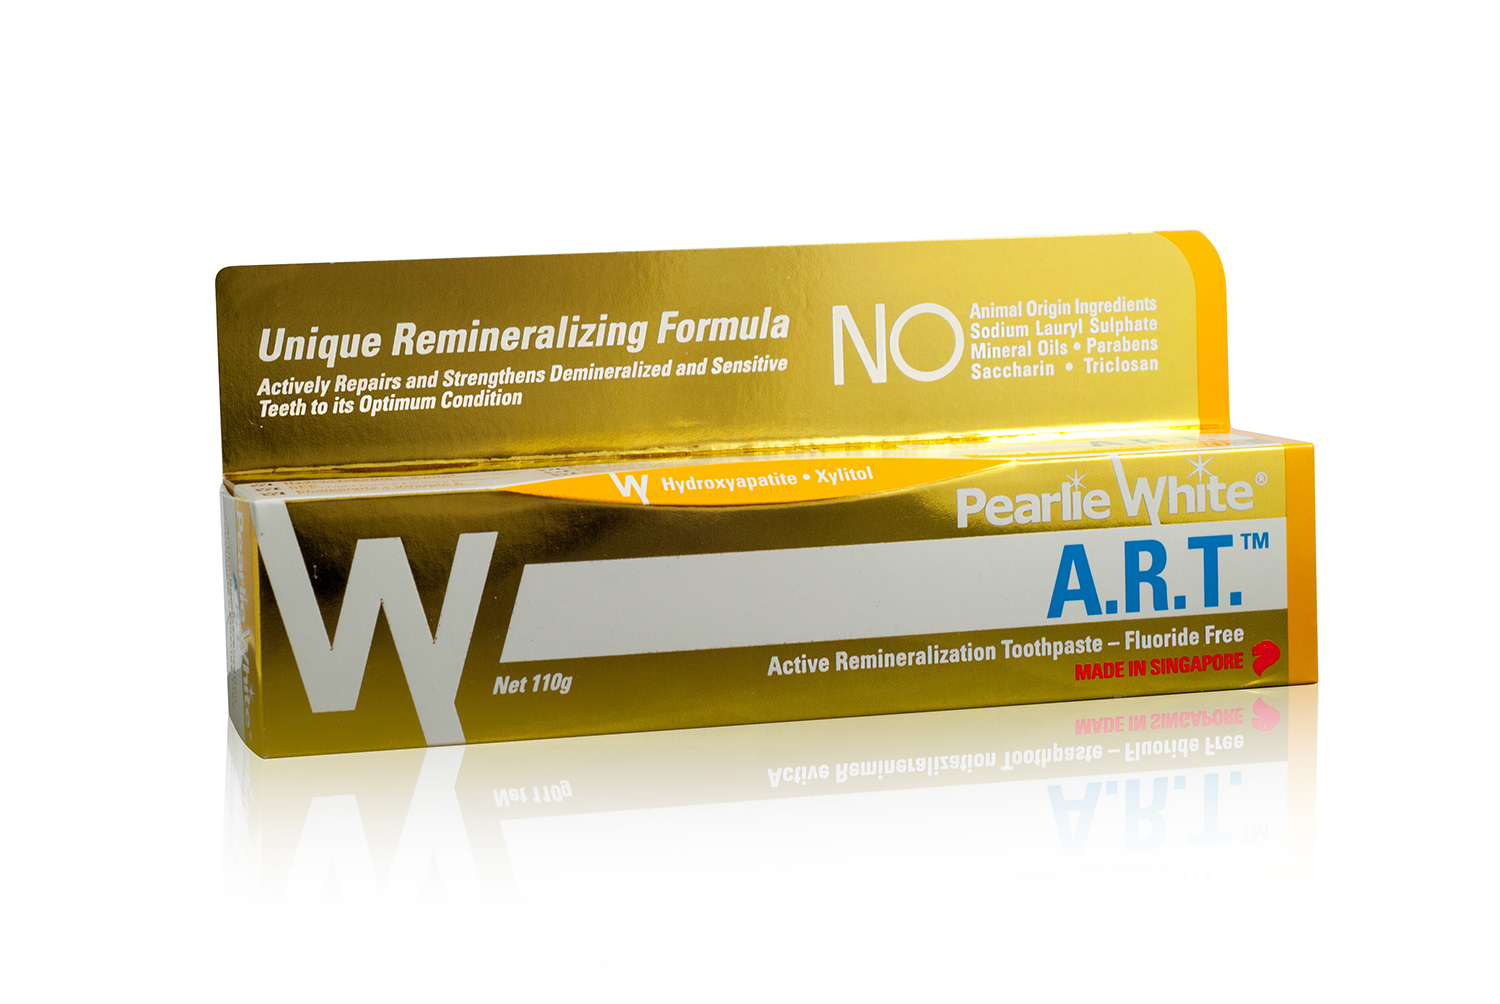 Pearlie-White_A.R.T_Active-Remineralization-Toothpaste-(credit-to-Pearlie-White)-(3)